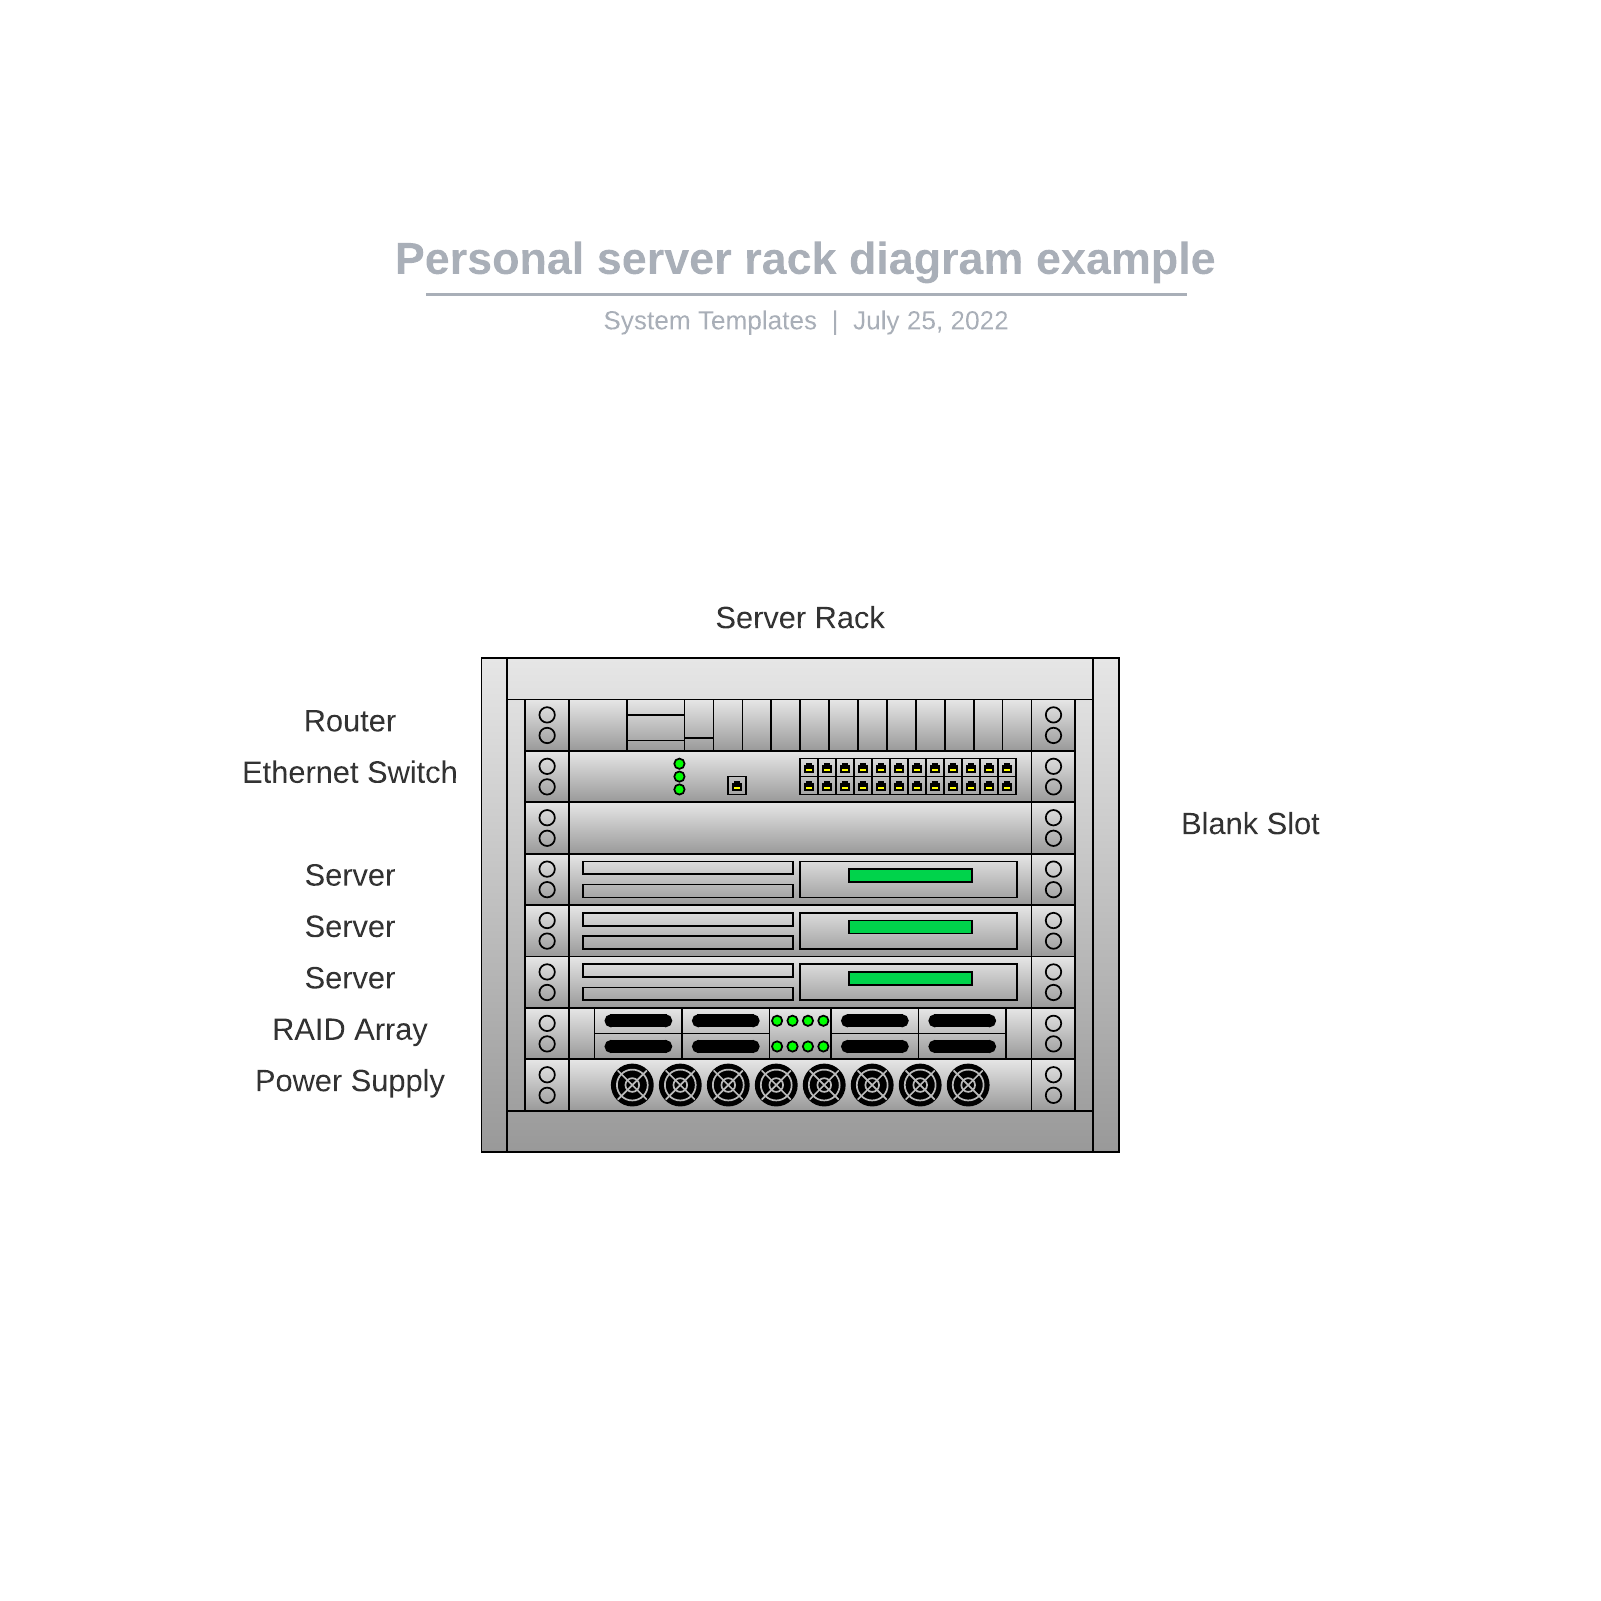 Personal server rack diagram example